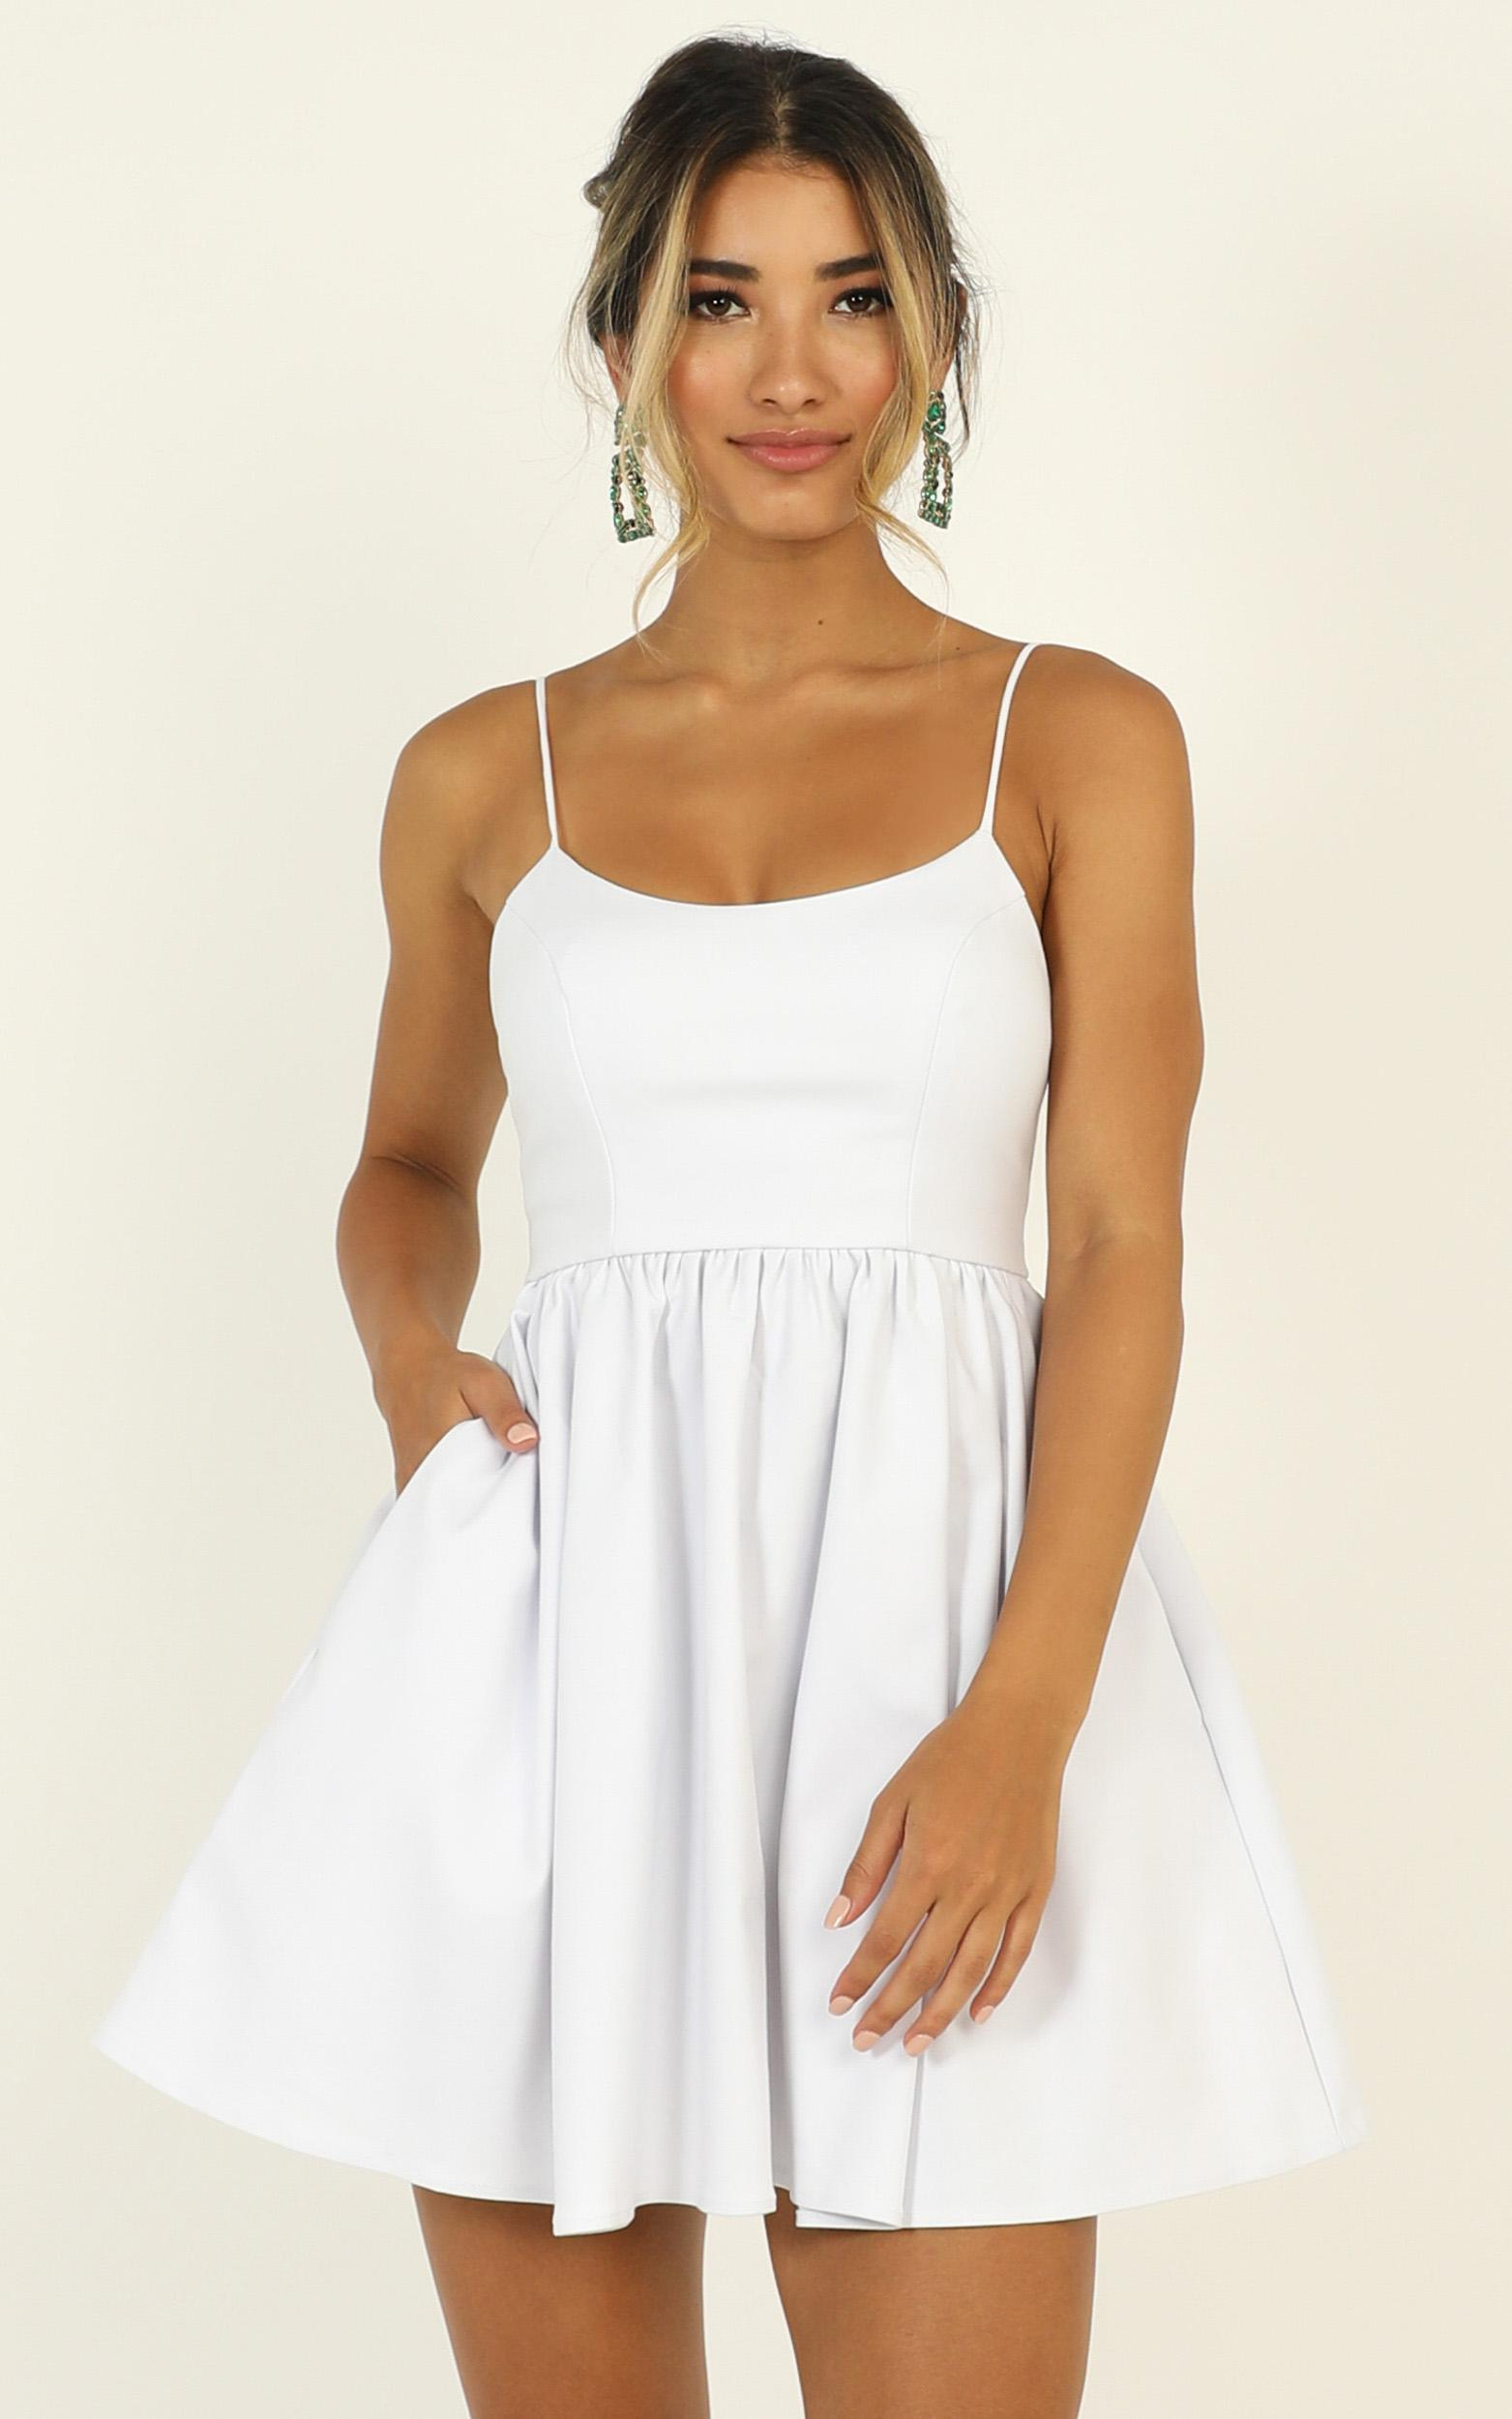 You Got Nothing To Prove Dress in white - 20 (XXXXL), White, hi-res image number null